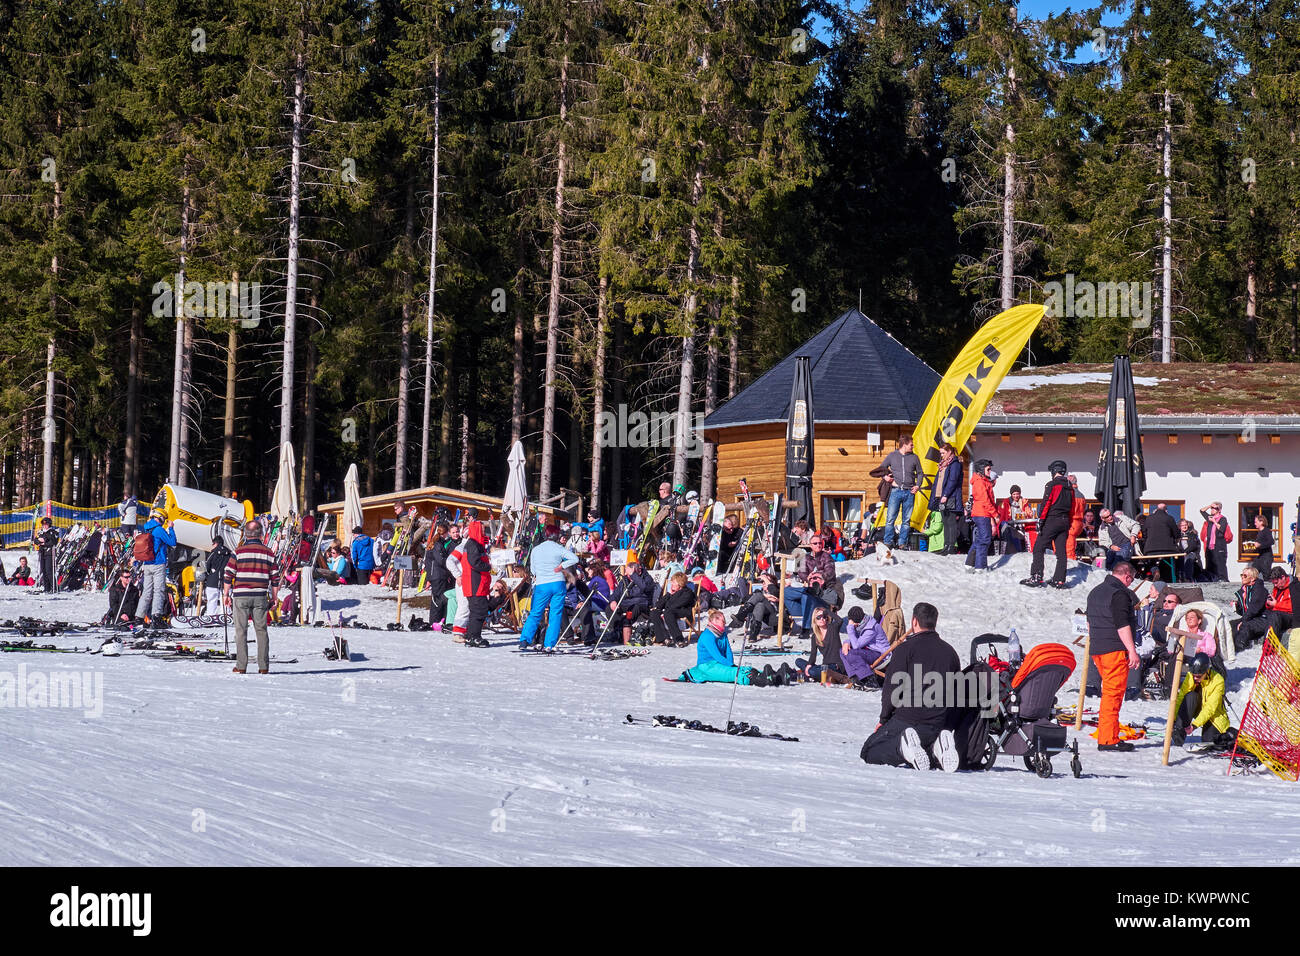 WINTERBERG, GERMANY - FEBRUARY 15, 2017: People chilling out in the sun on a piste at Ski Carousel Winterberg - Stock Image